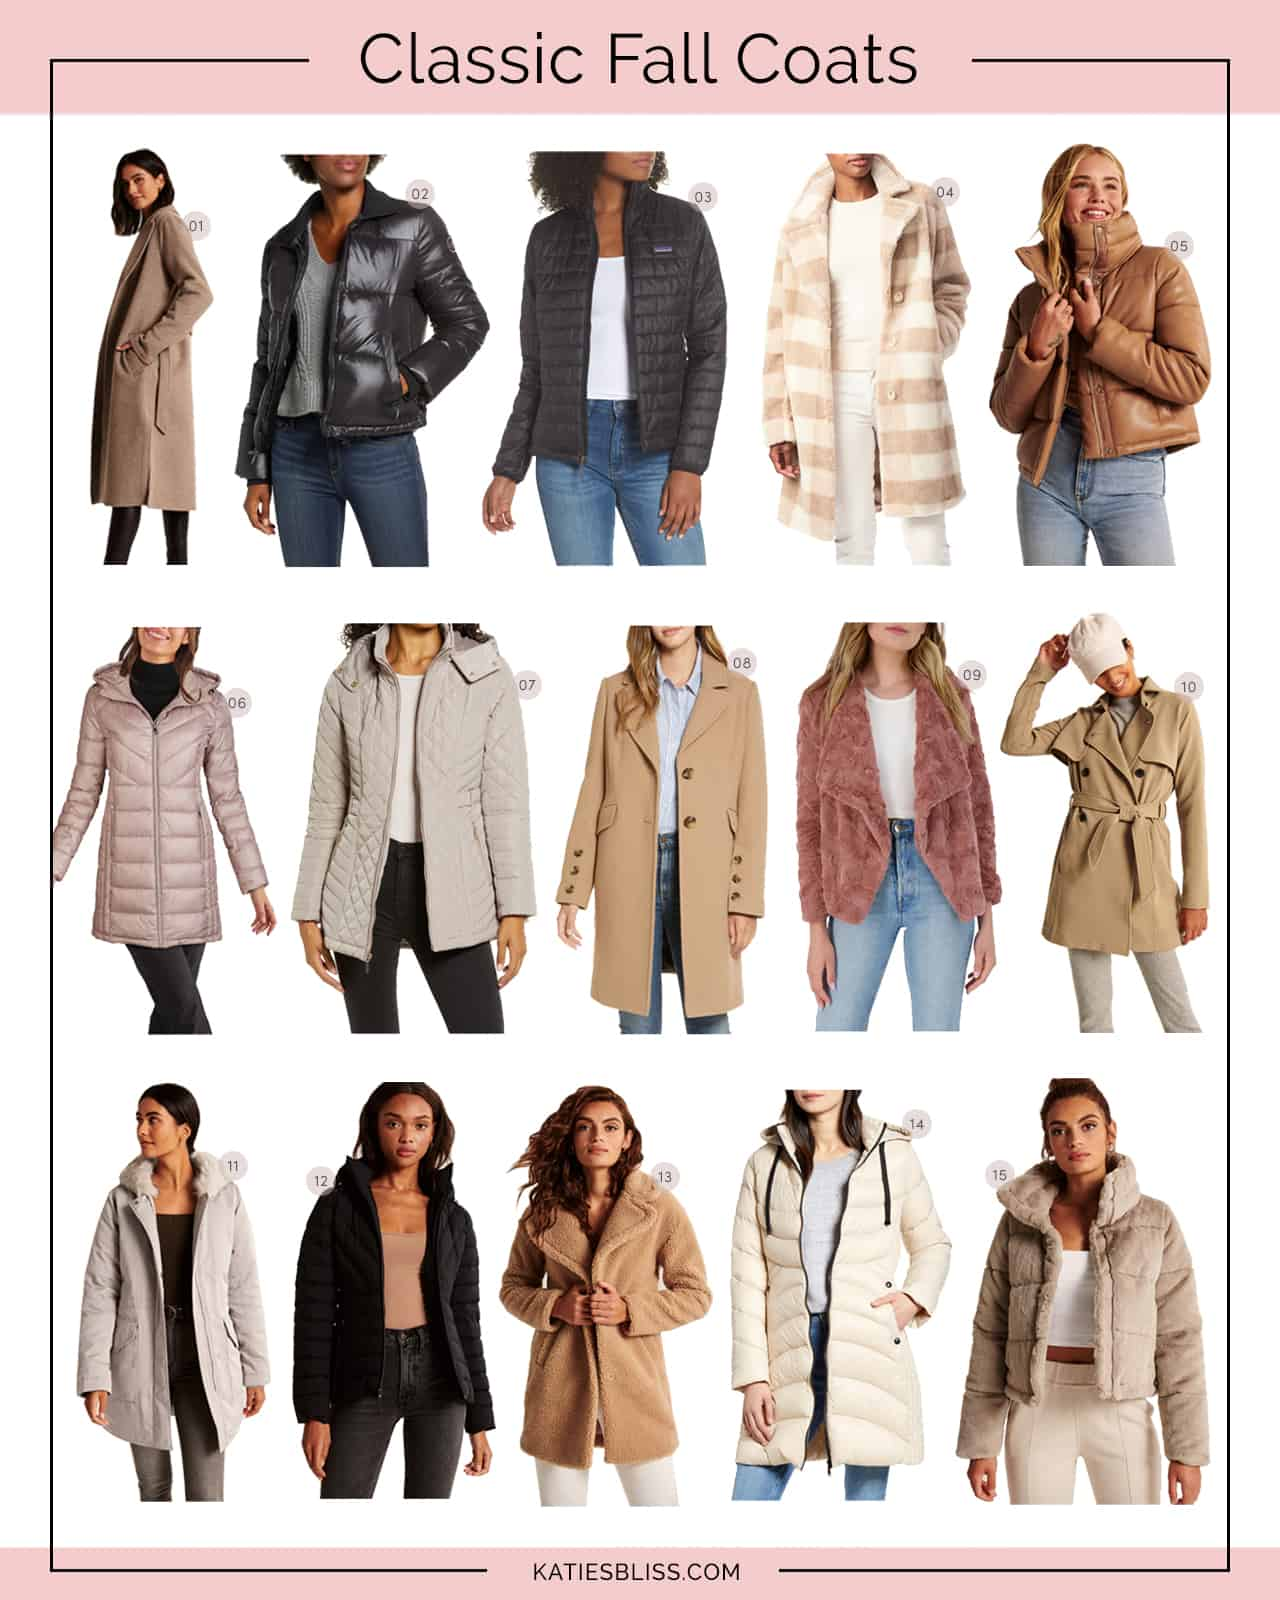 Katies Bliss Classic Fall Coats